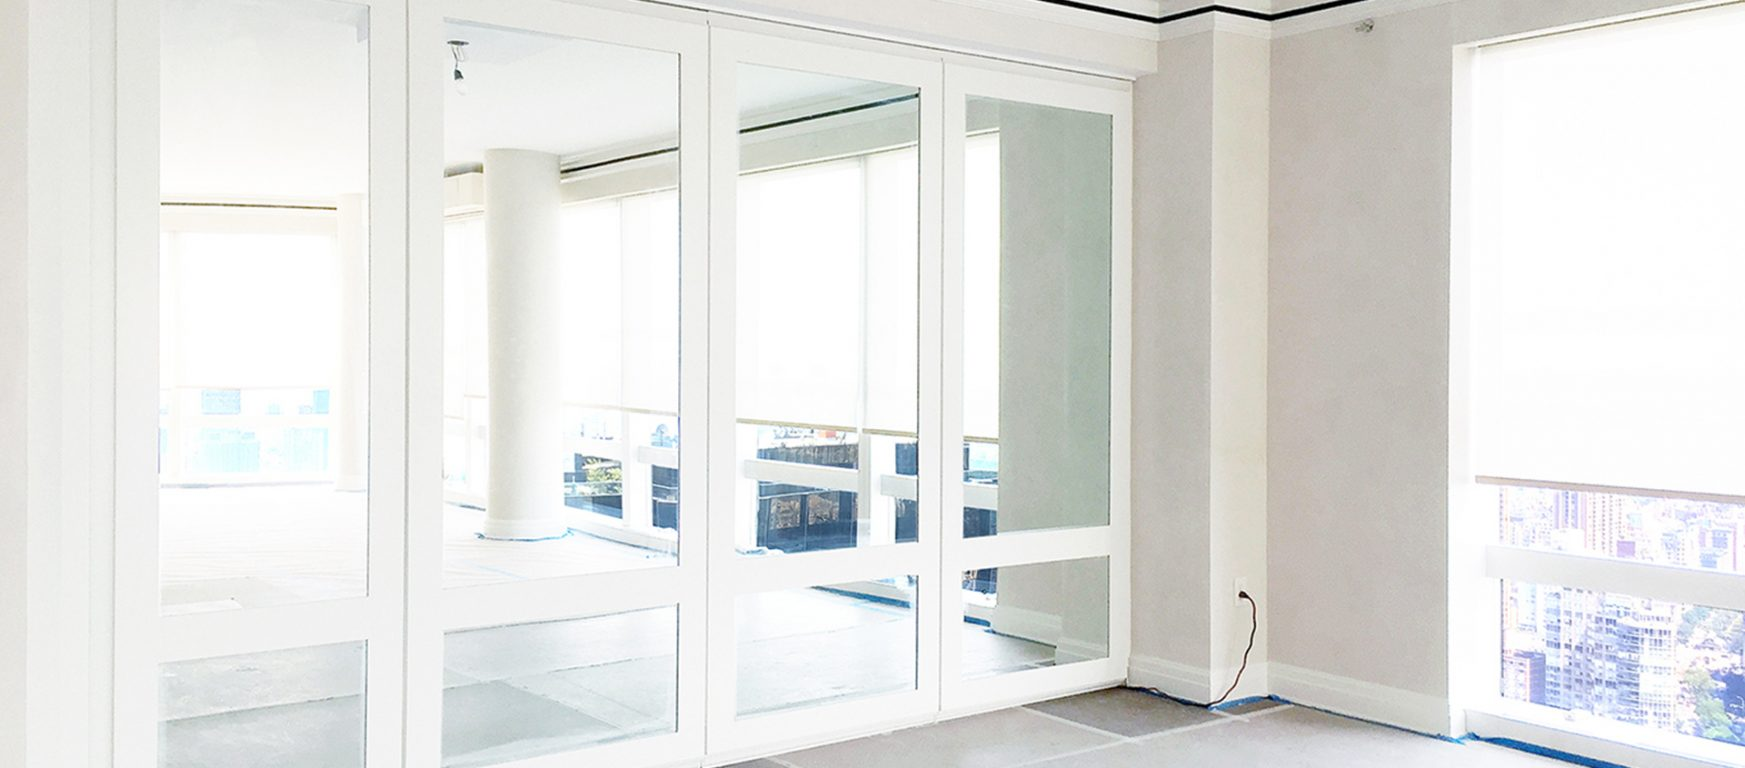 modernfold acousti-seal framed mirror partitions